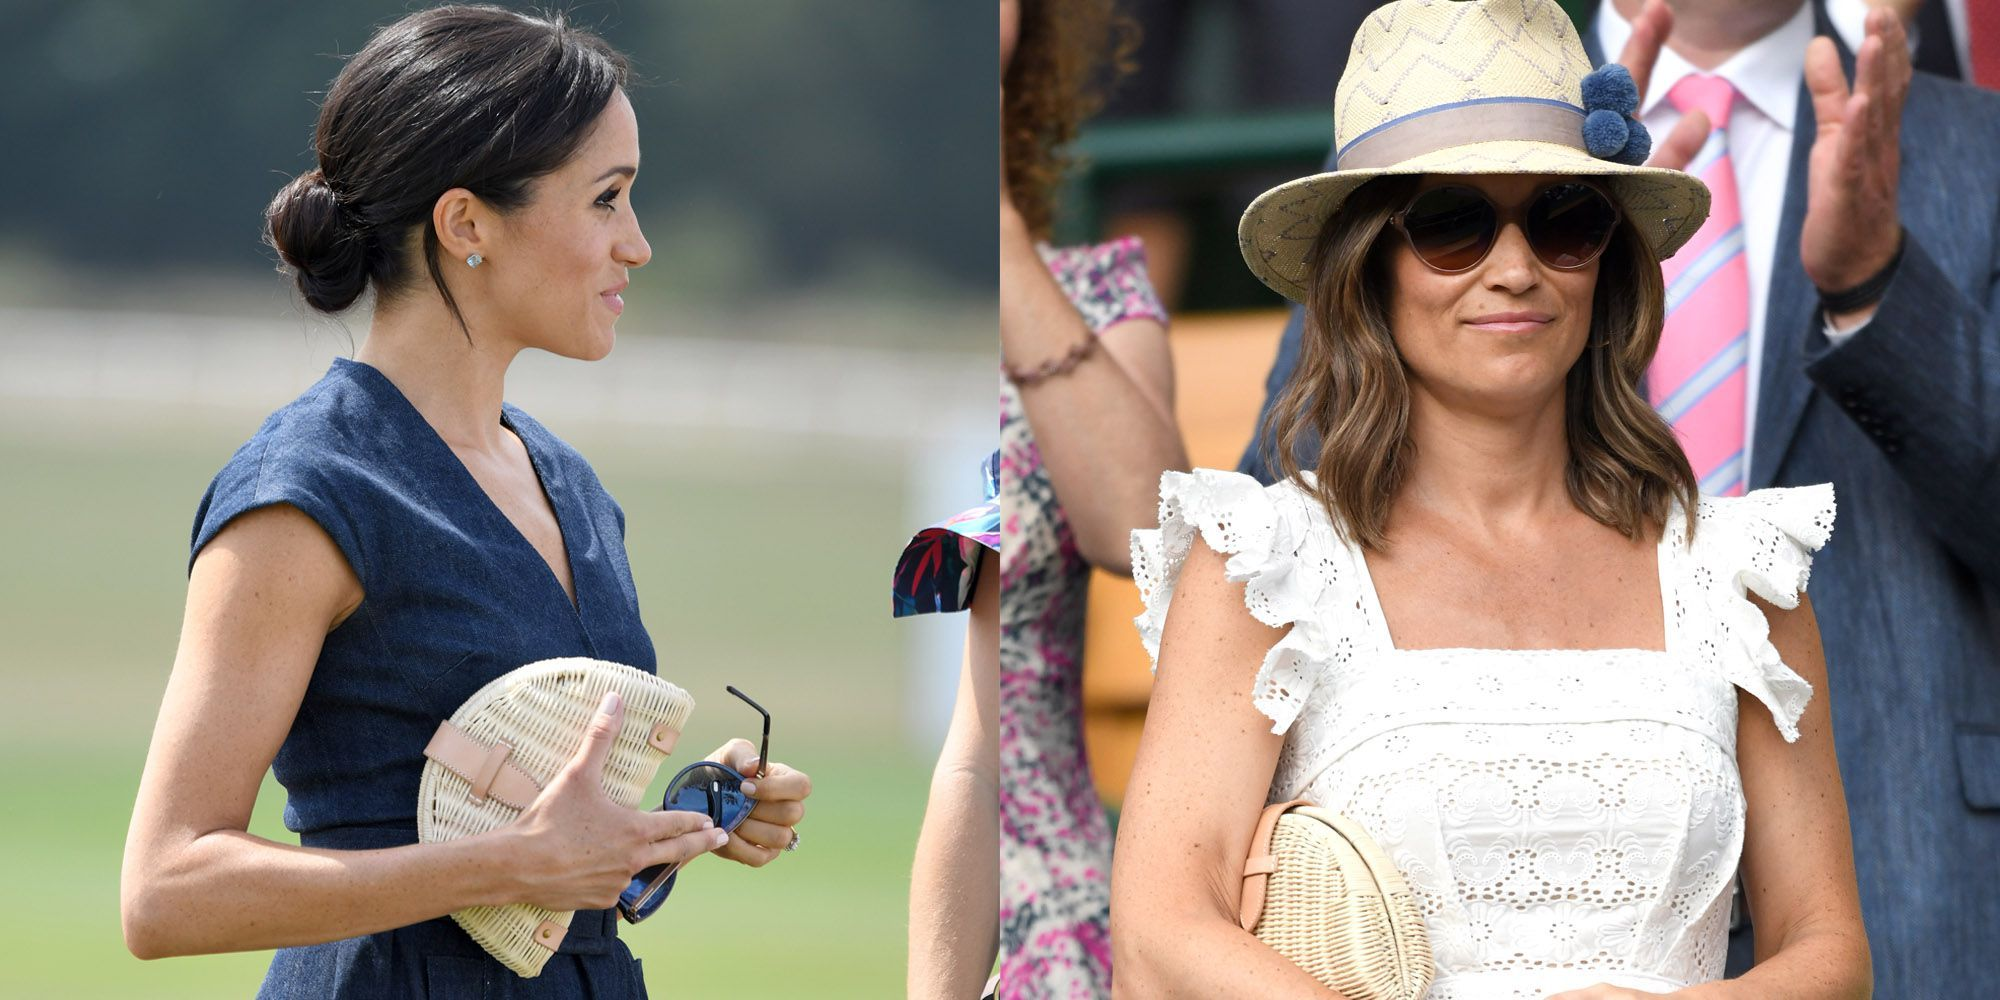 c8122d568 Meghan Markle and Pippa Middleton Rocked the Same Affordable J.Crew Clutch